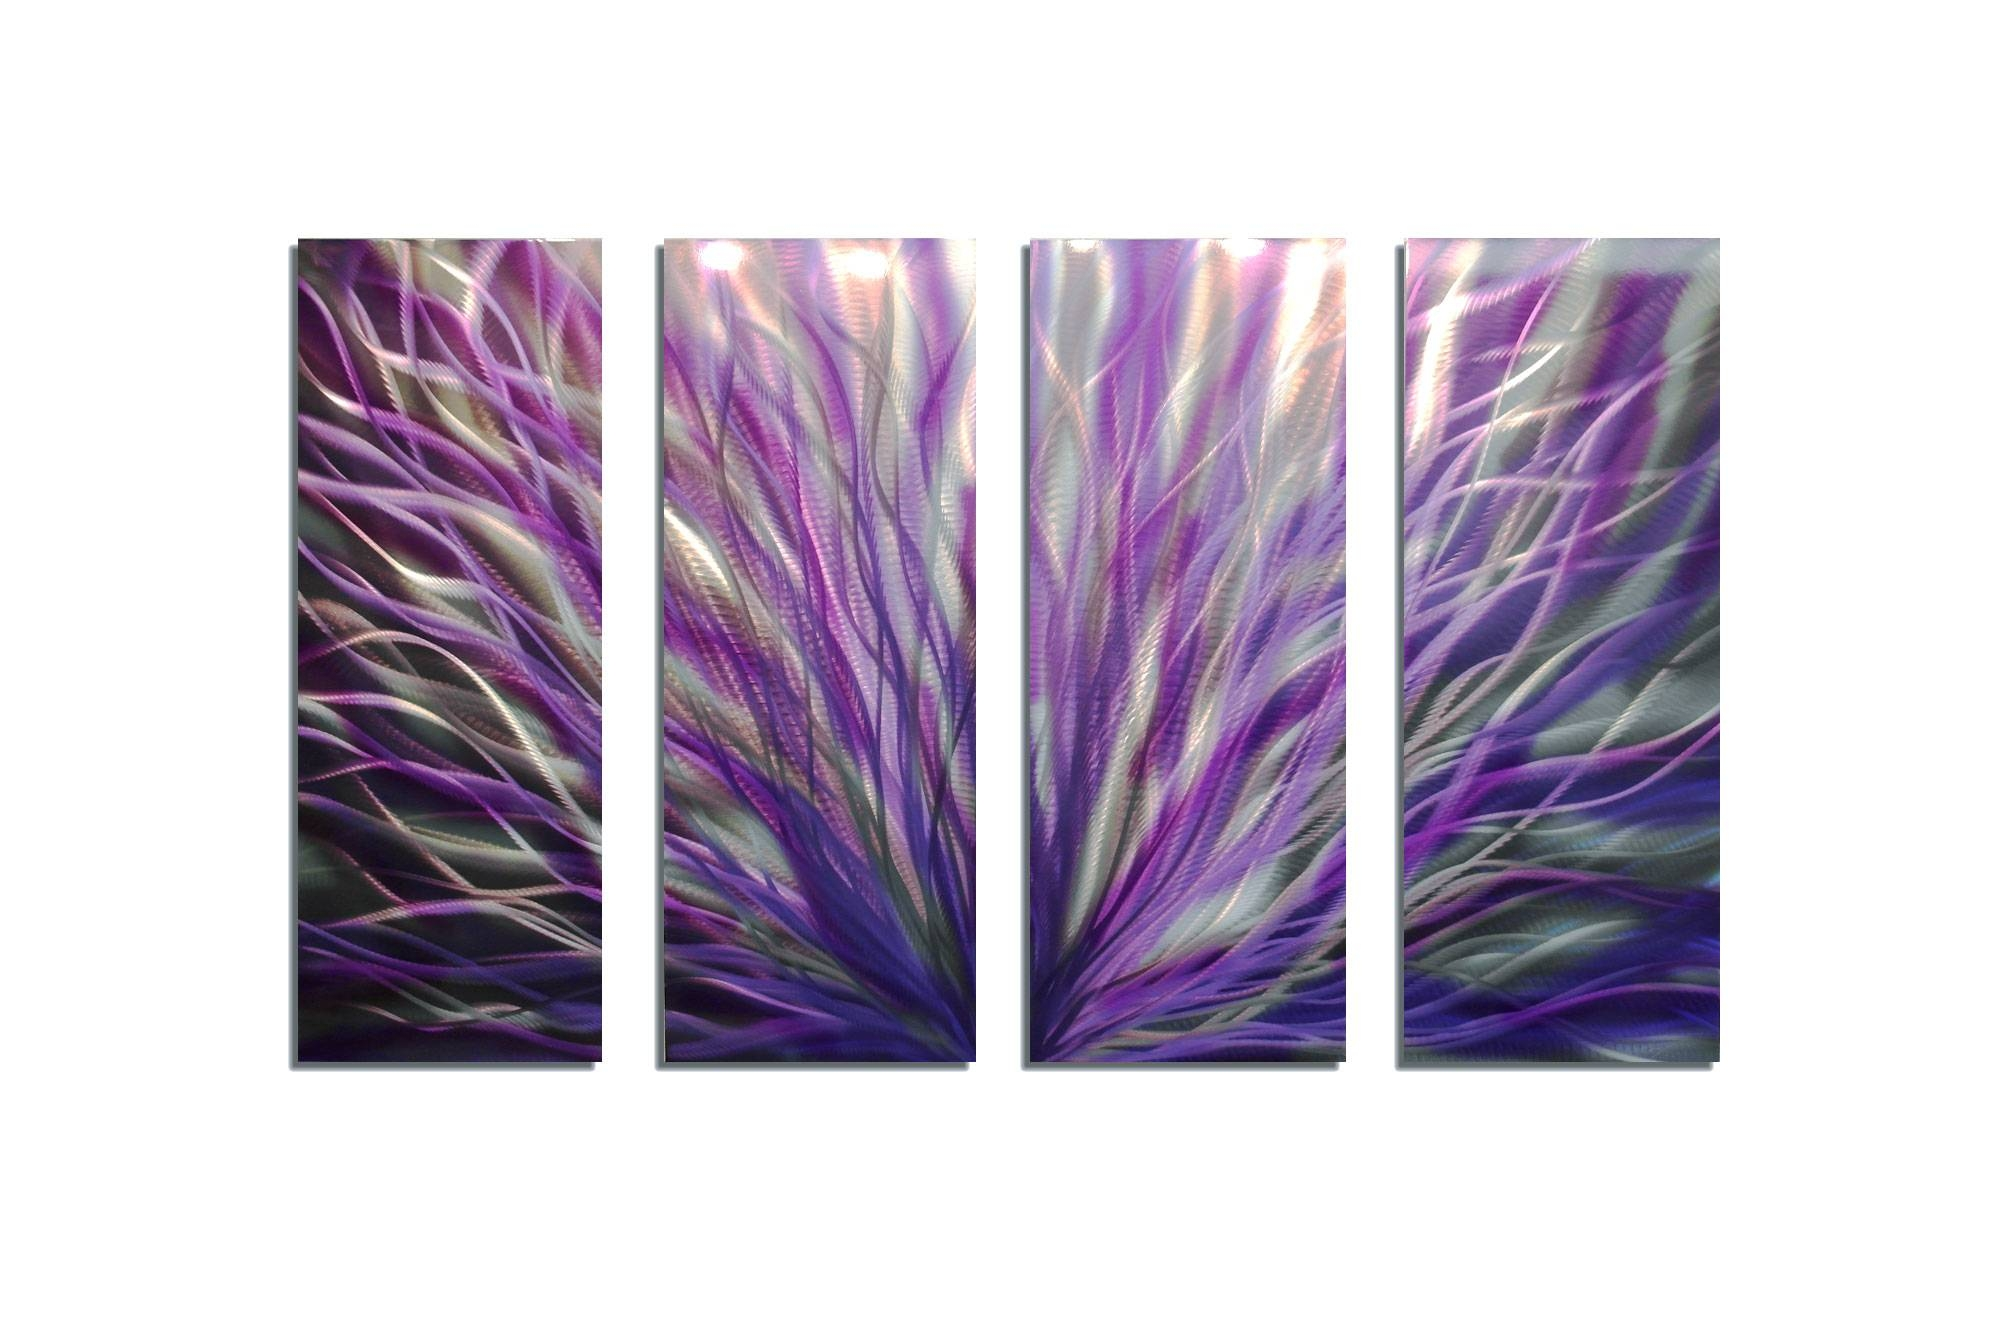 Radiance Purple 36X63 – Abstract Metal Wall Art Contemporary For 2018 Purple Metal Wall Art (View 12 of 20)